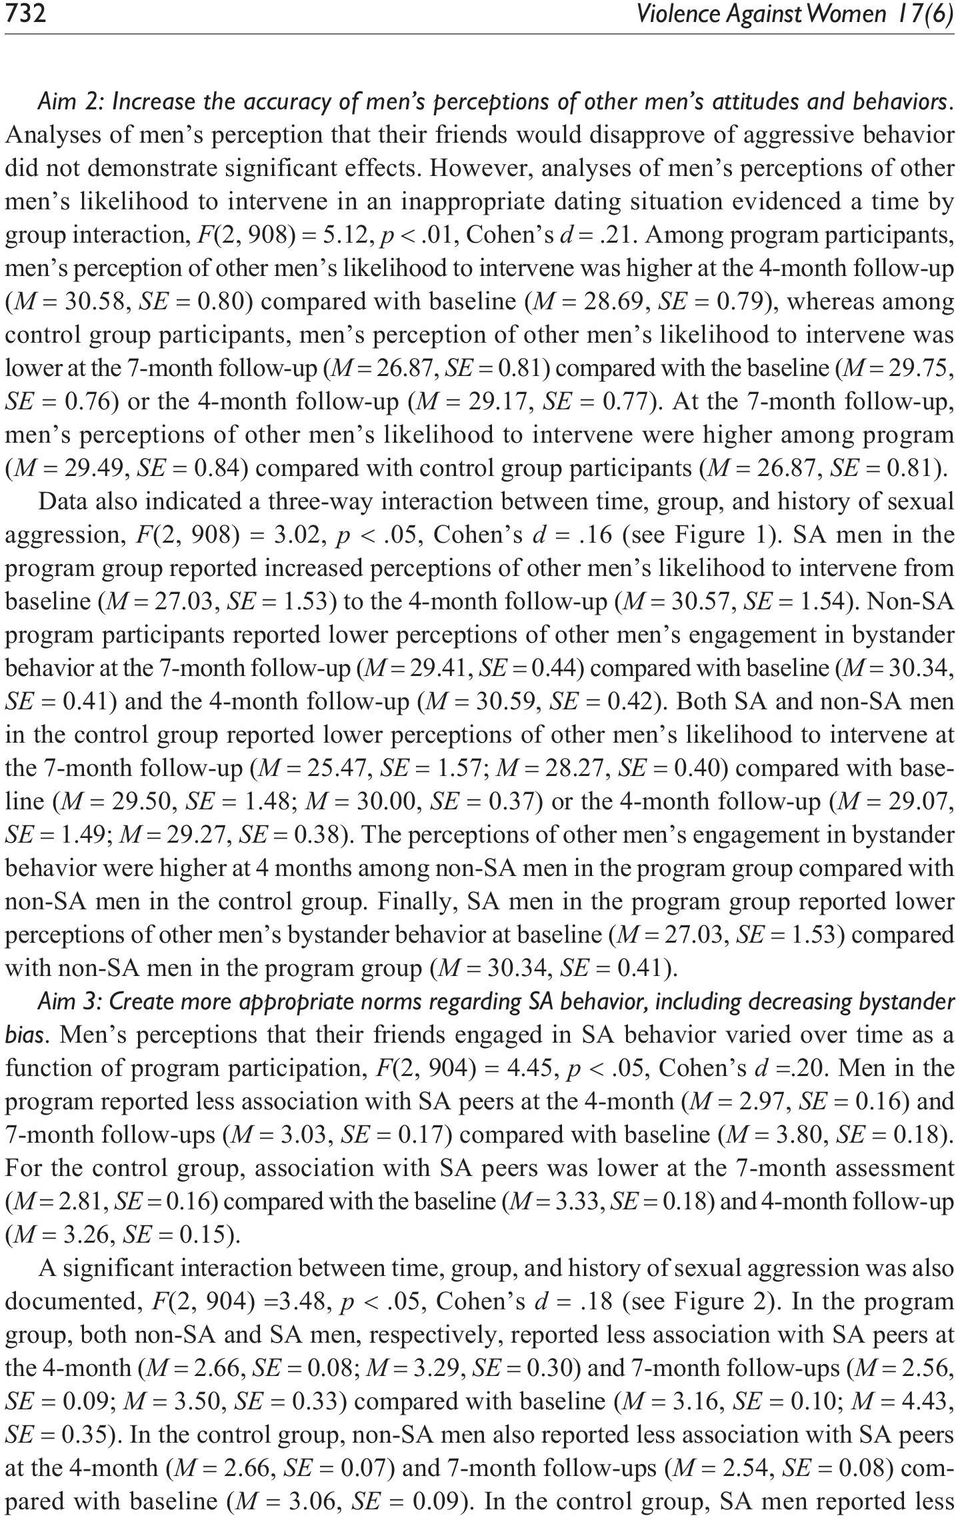 However, analyses of men s perceptions of other men s likelihood to intervene in an inappropriate dating situation evidenced a time by group interaction, F(2, 908) = 5.12, p <.01, Cohen s d =.21.